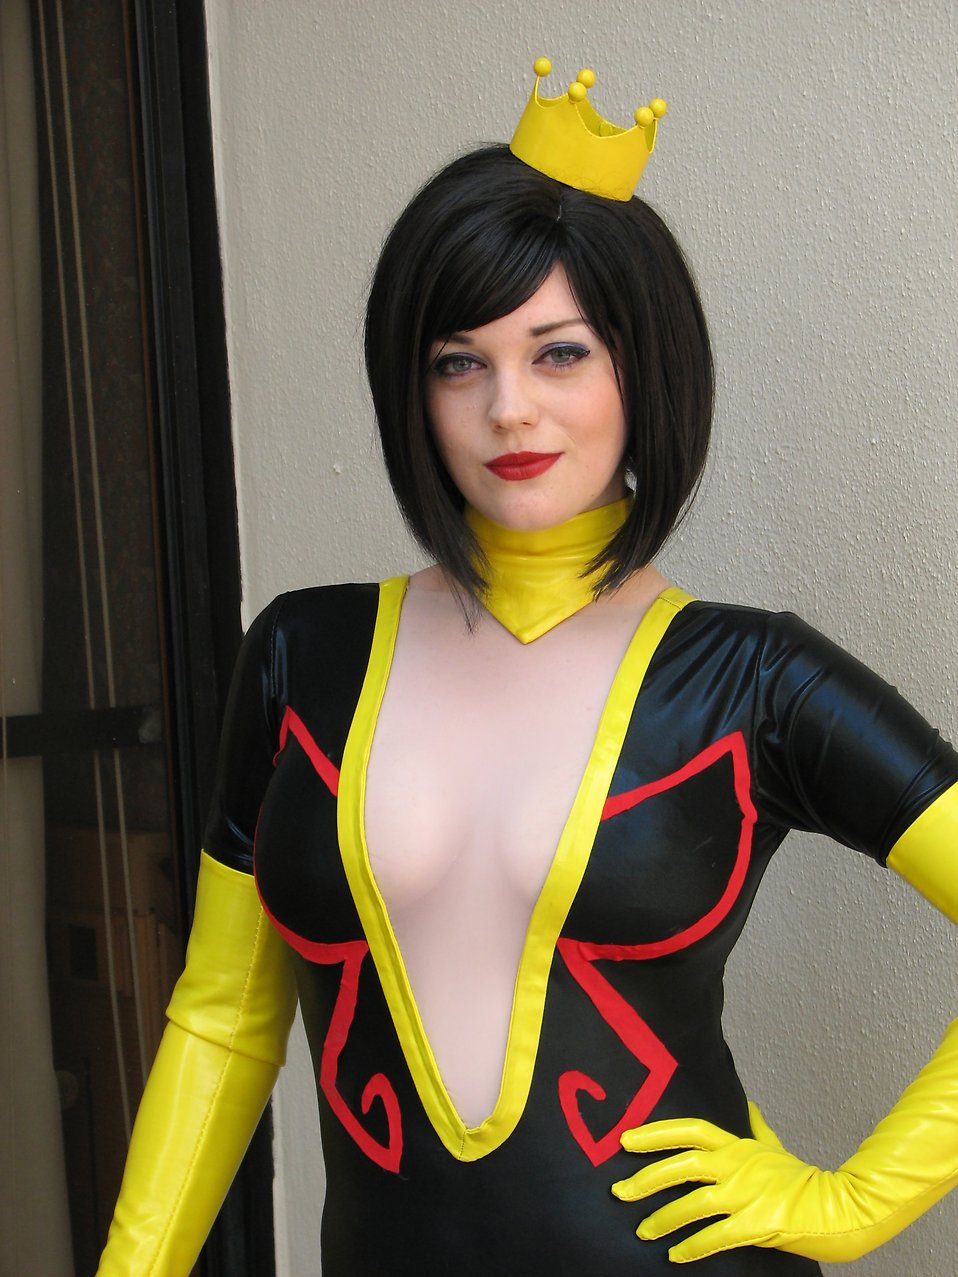 Beautiful girl in a black and yellow costume at Dragoncon 2008 : Free Stock Photo